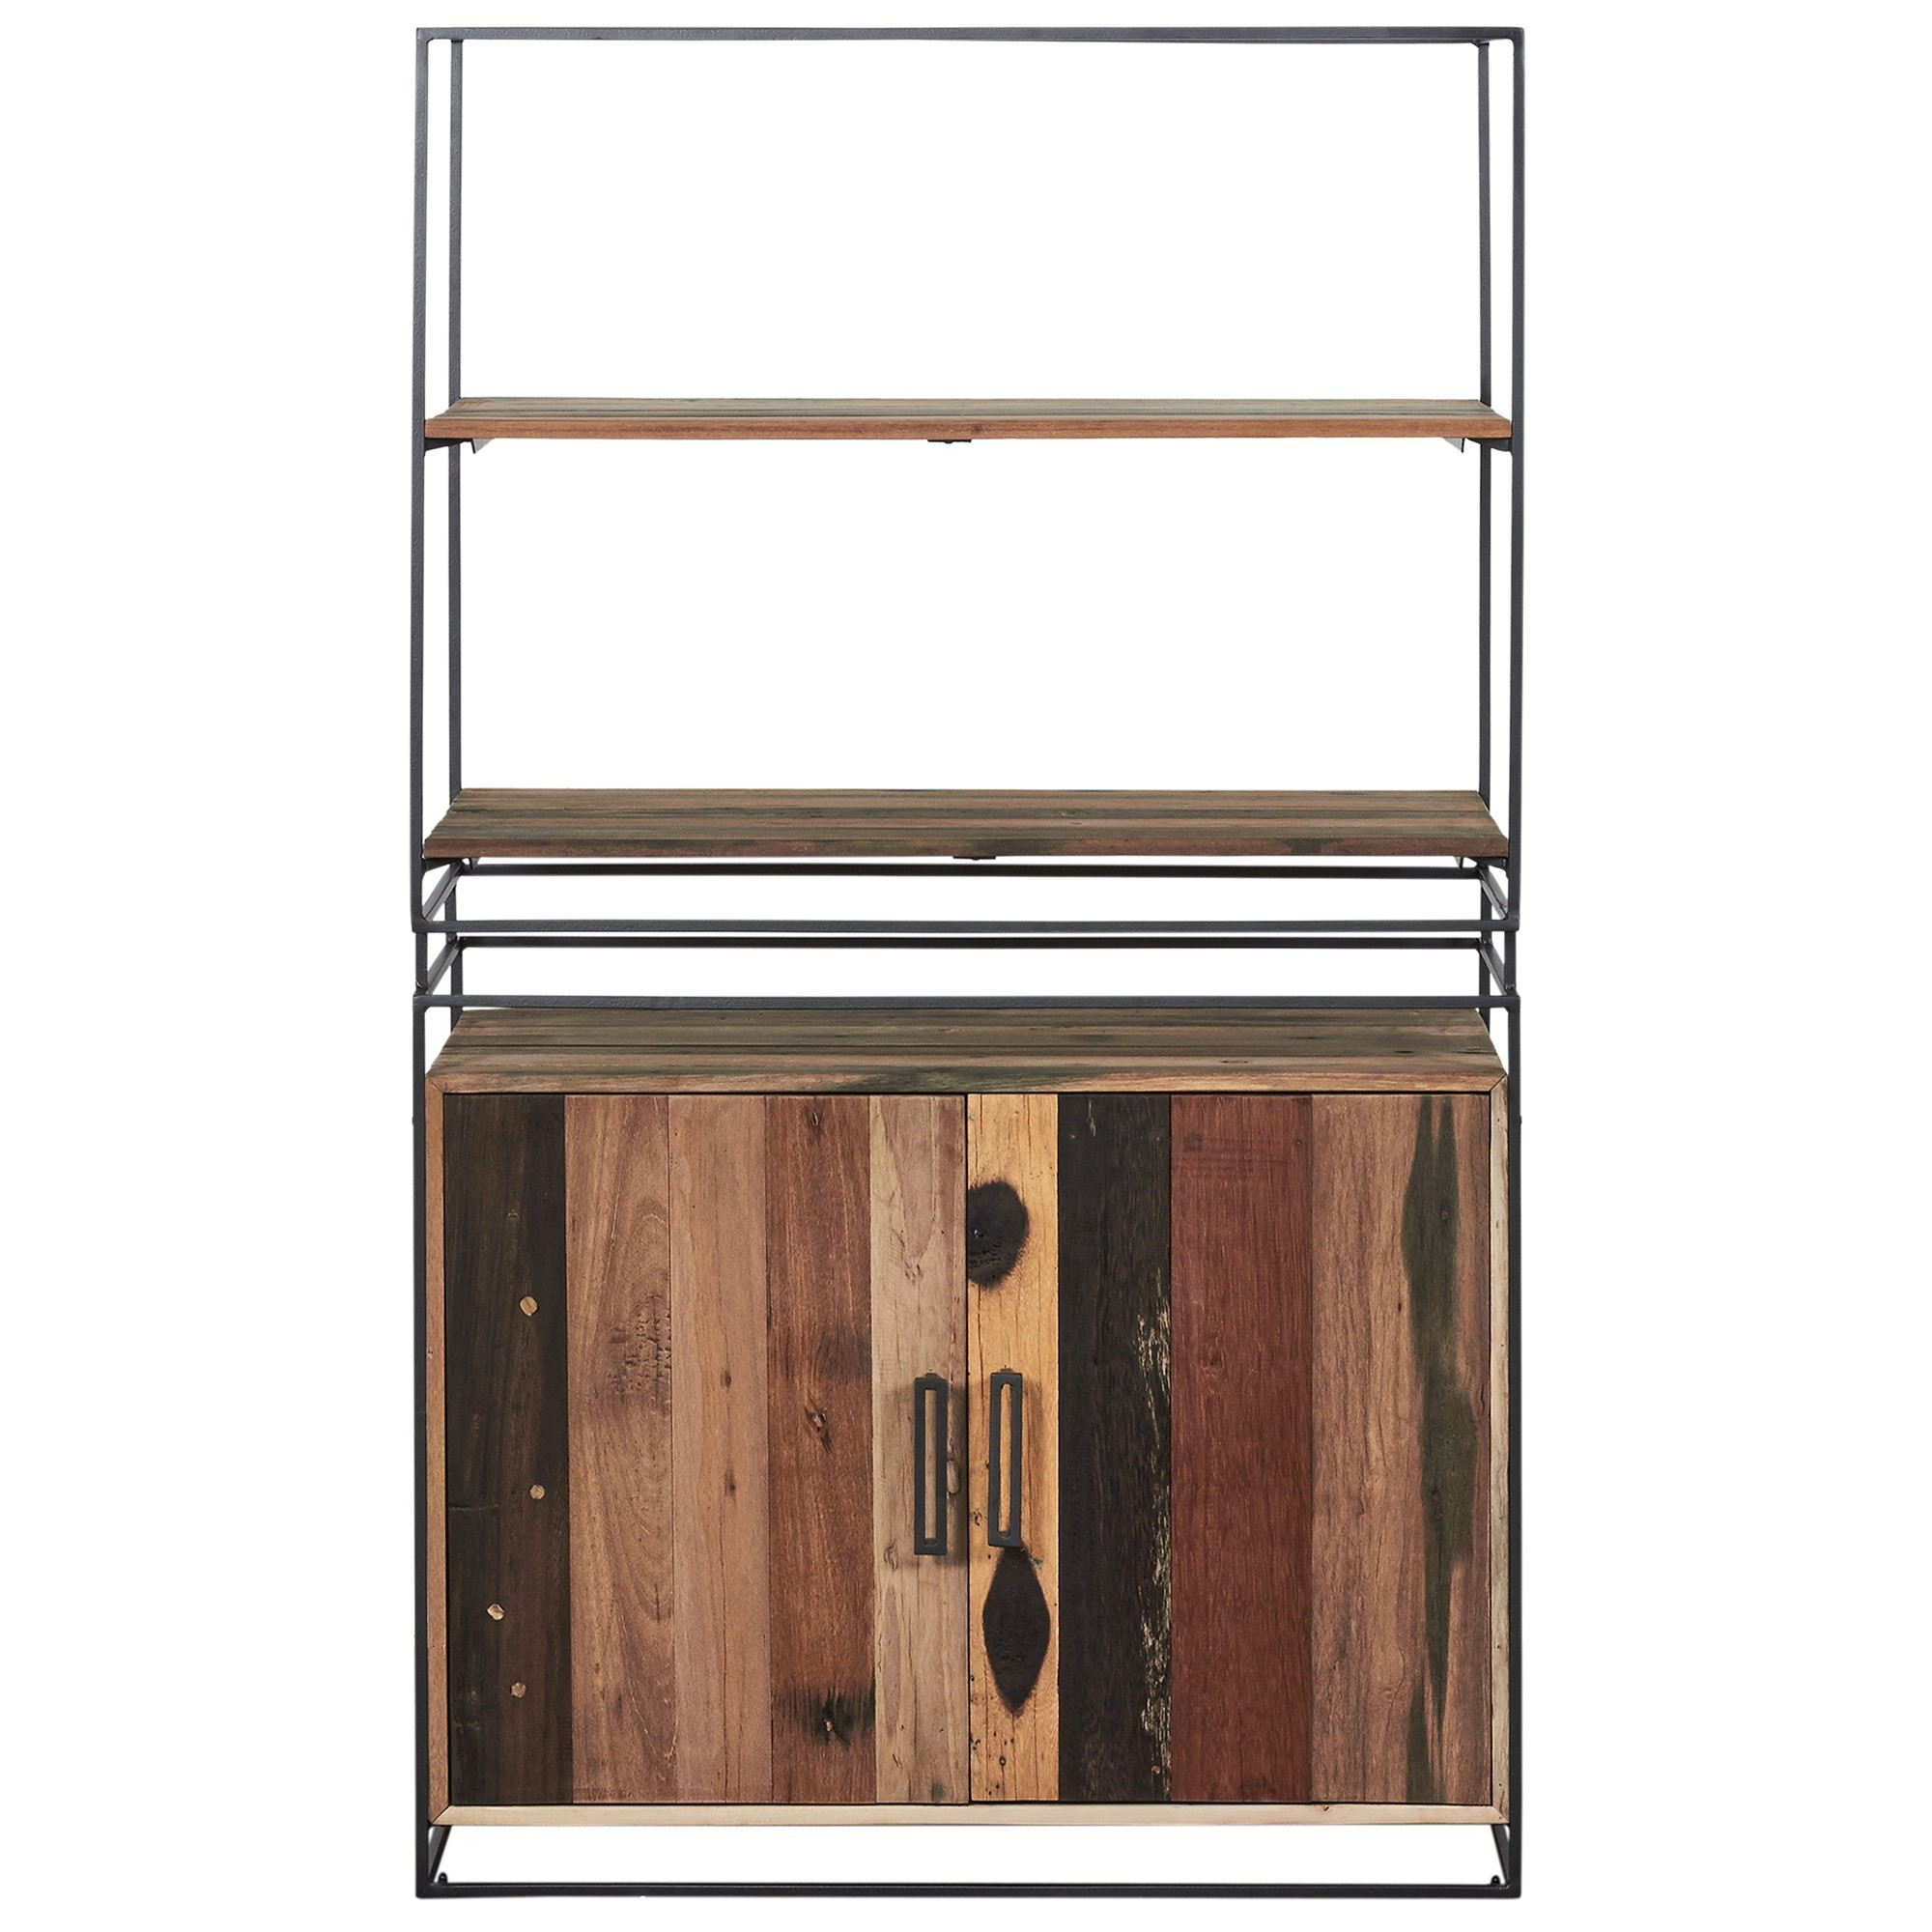 Nako Commercial Grade Reclaimed Timber & Iron 2 Door Side Cabinet with Shelf